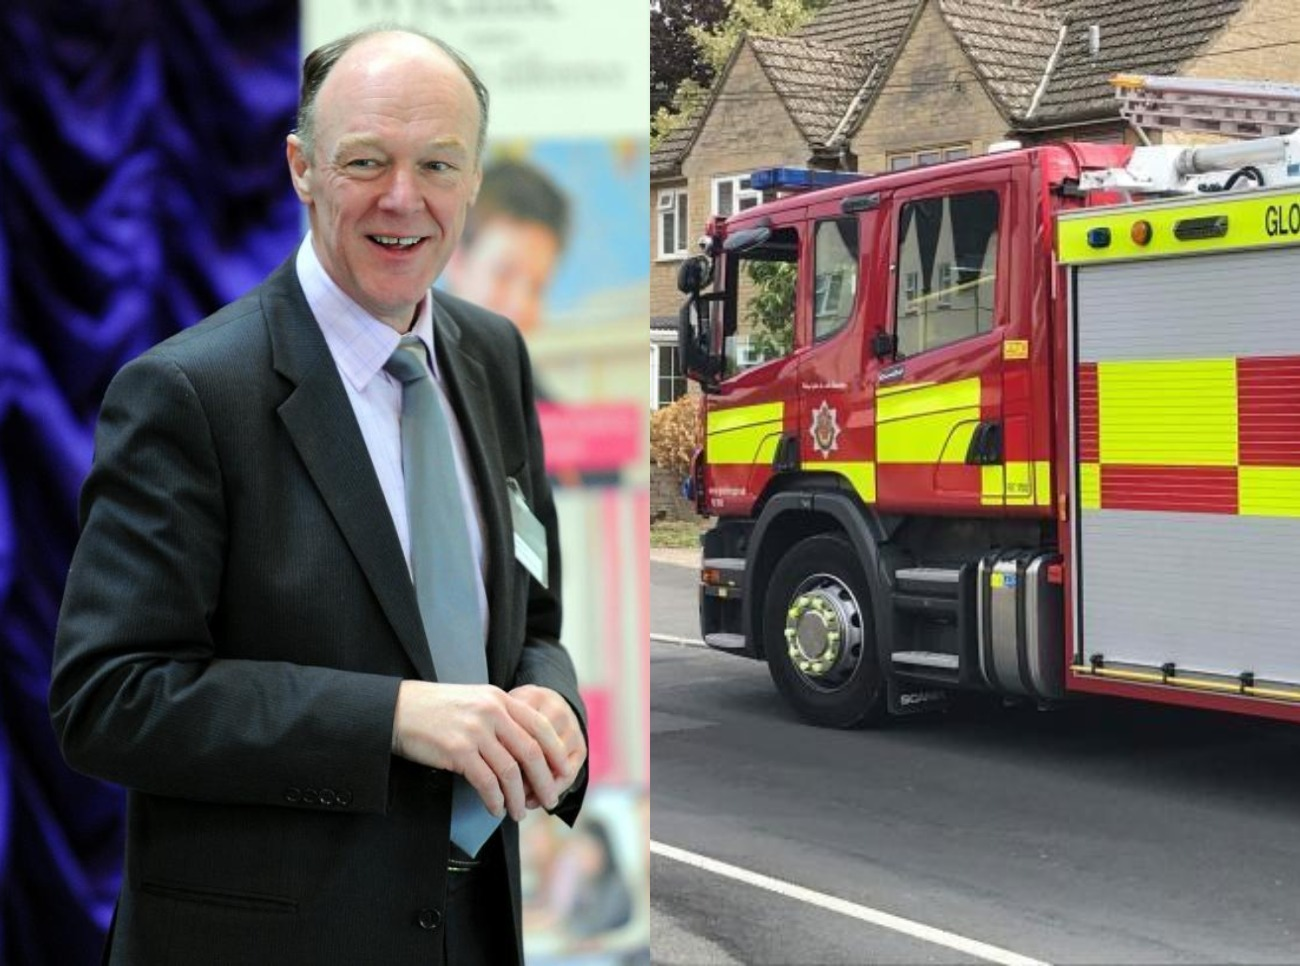 Police chief to examine control of Gloucestershire fire service